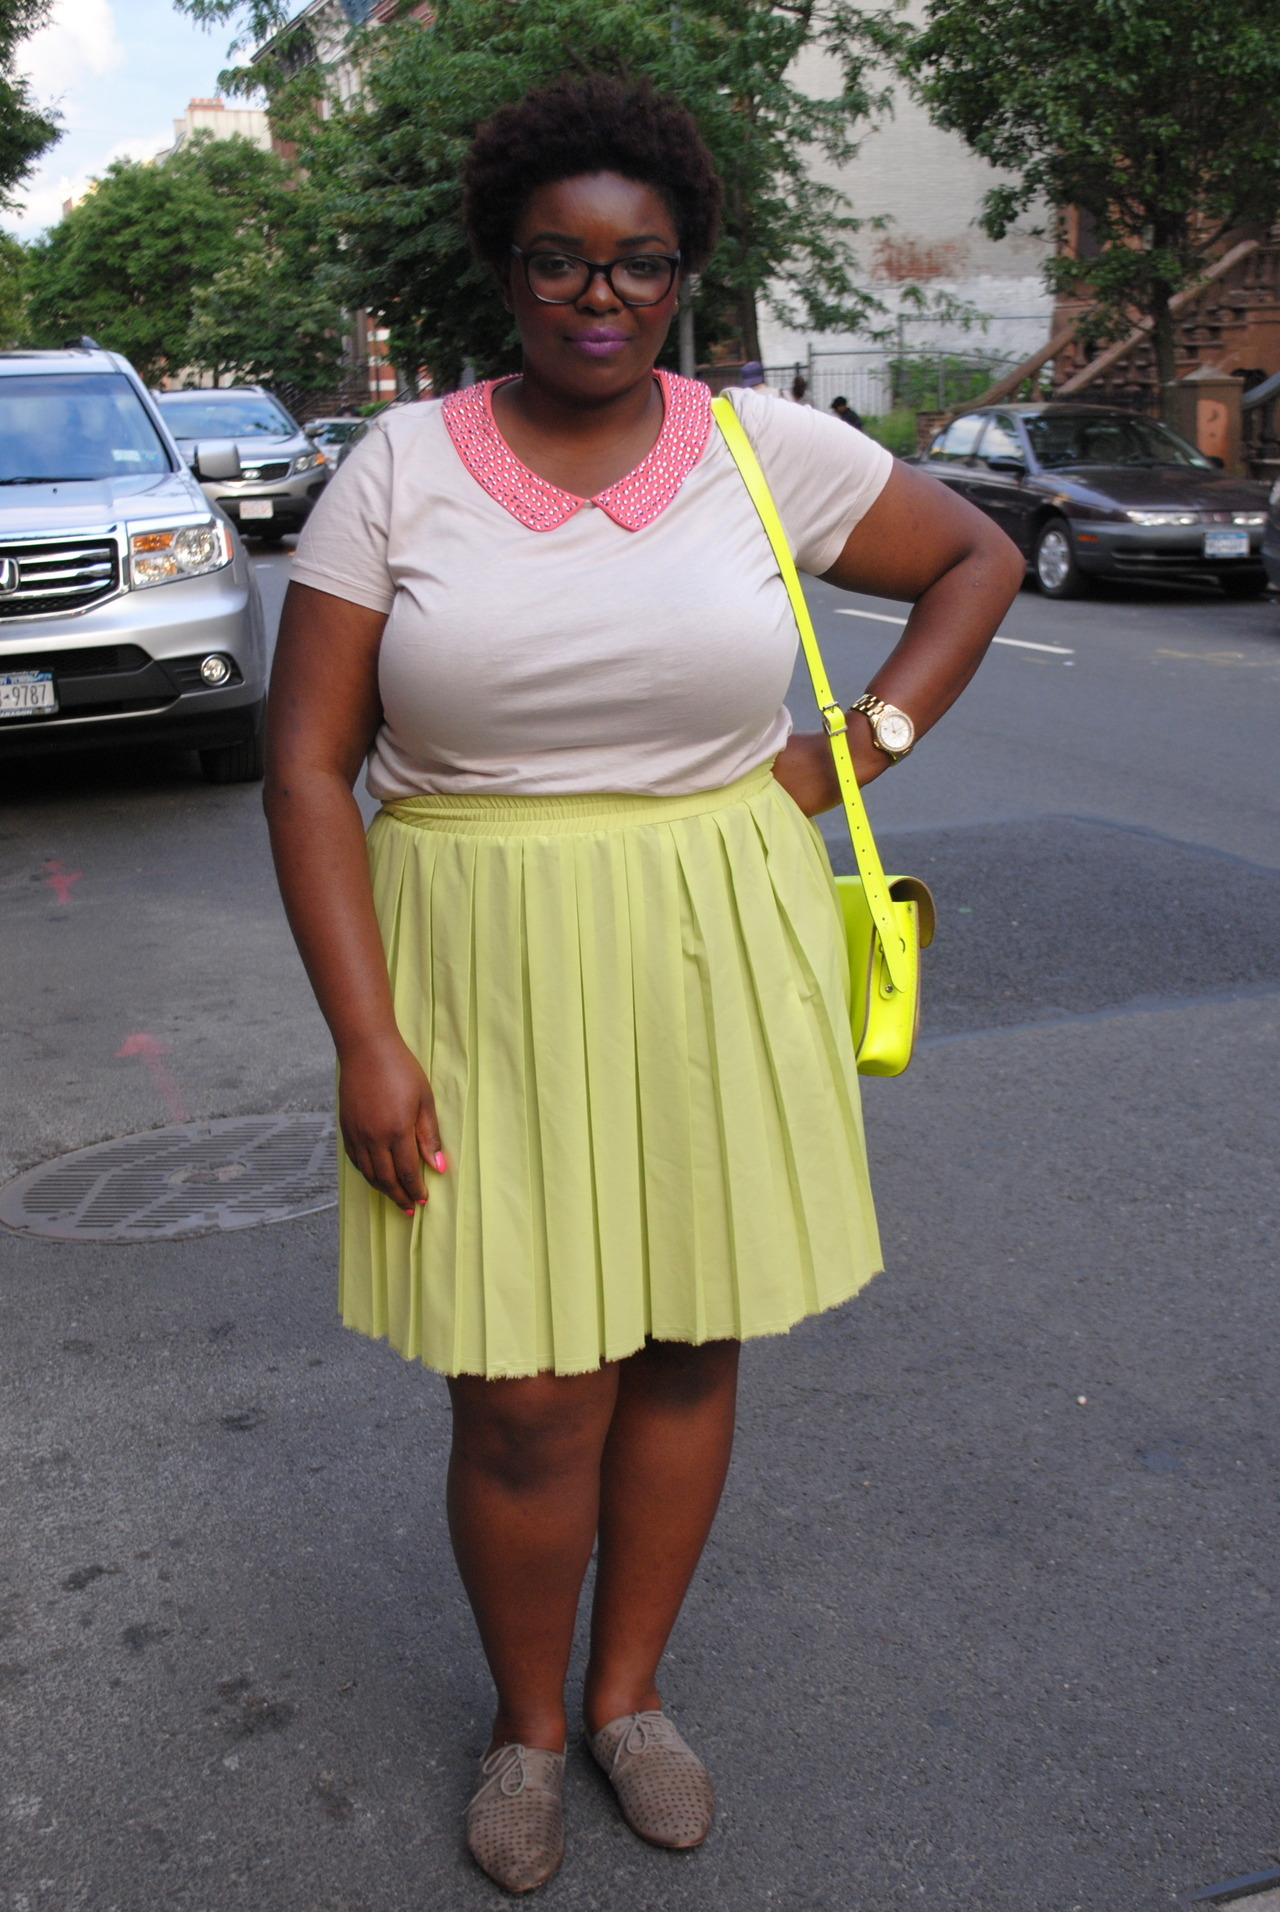 lipstickhipsandheels:  favorite outfit of life alert! I'm such a nerd. top: h&m skirt: anthropologie shoes: urban outfitters (brand idk)